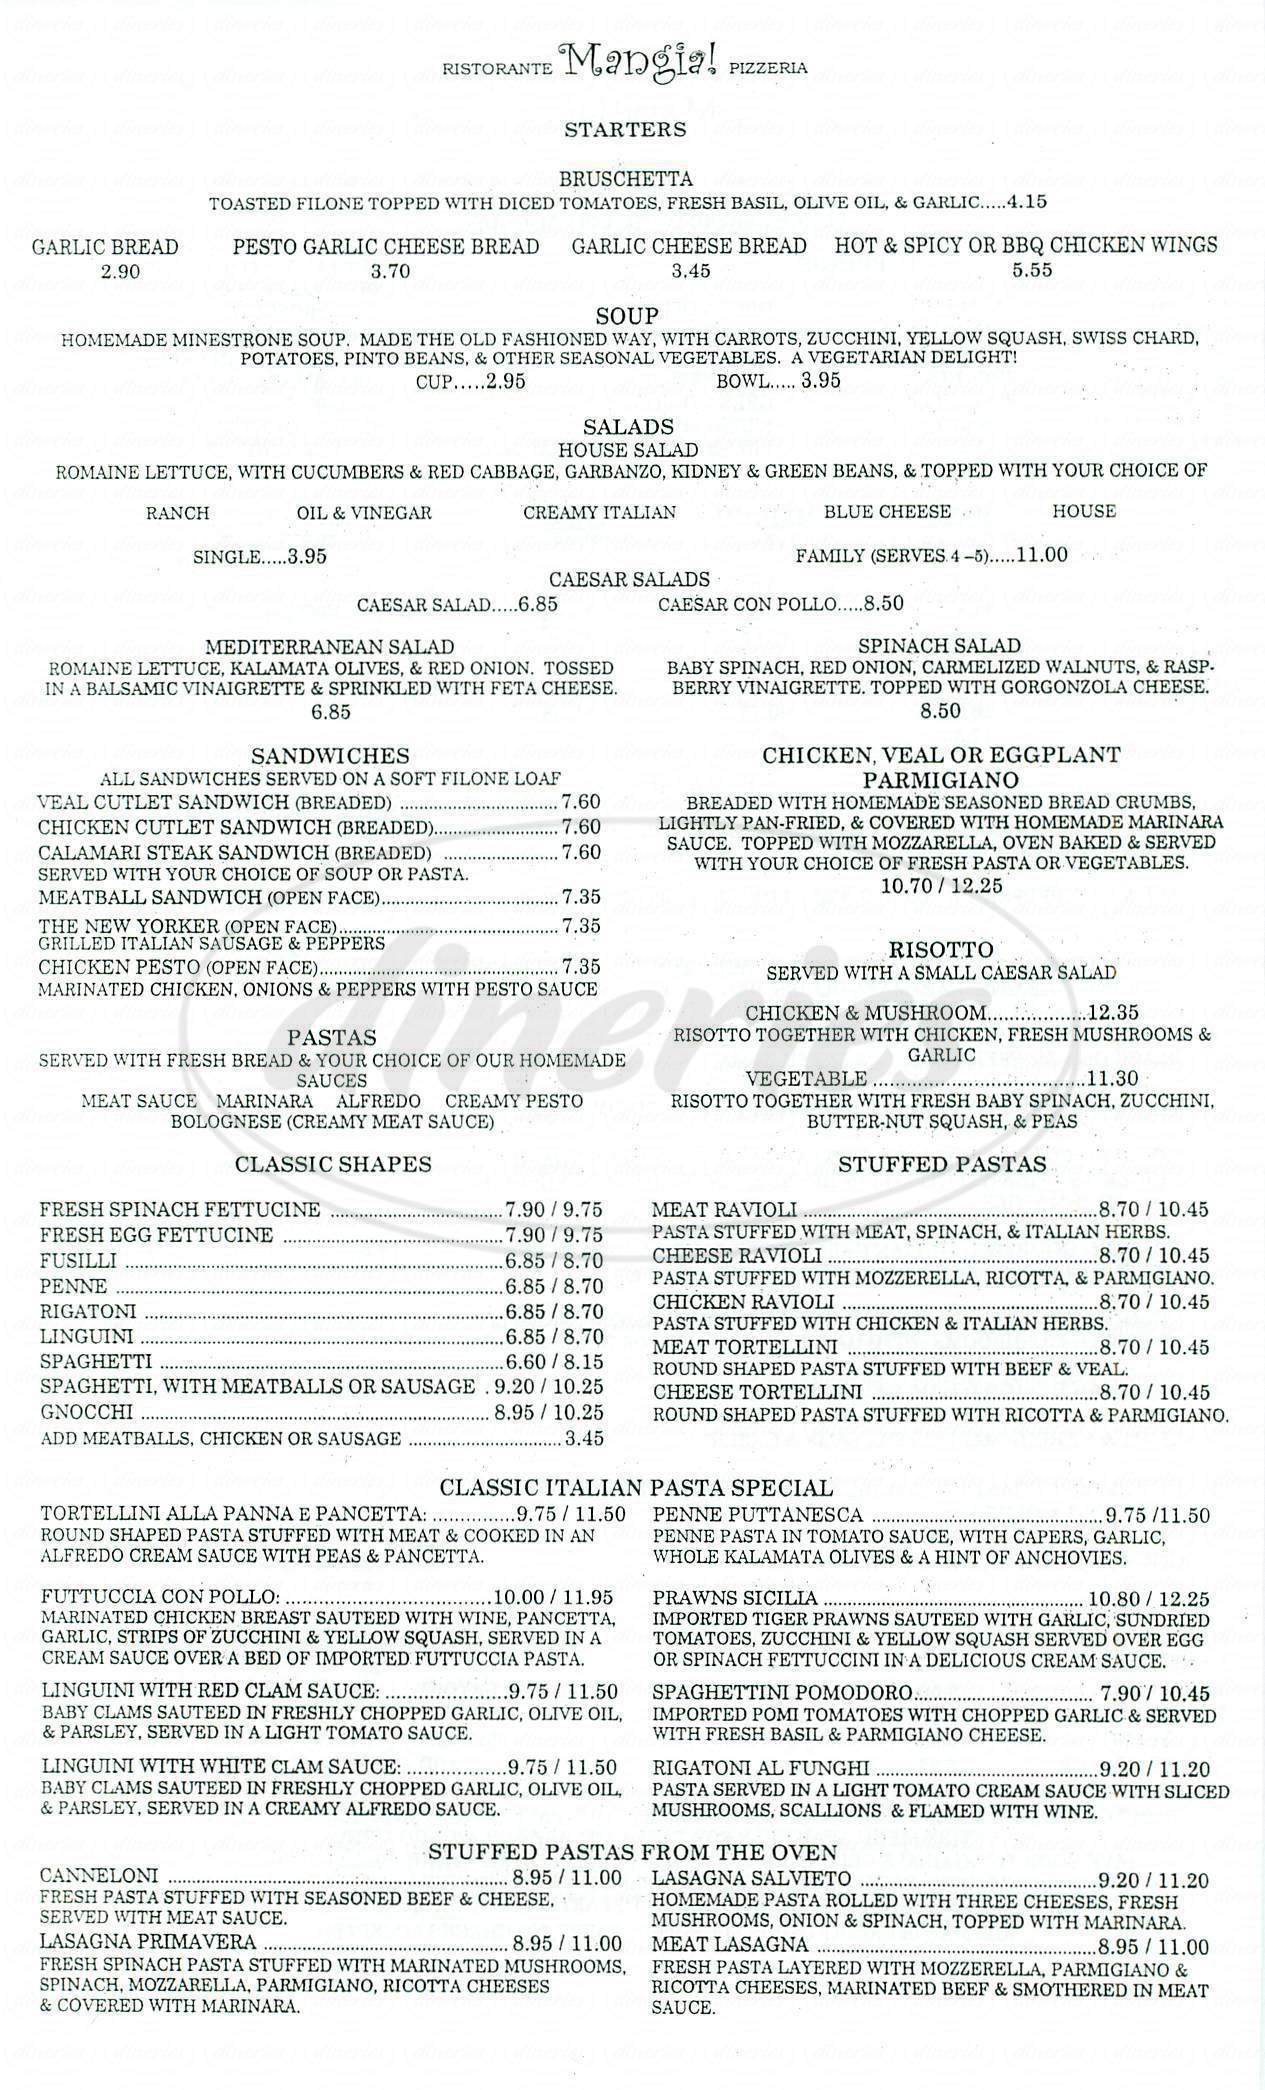 menu for Mangia Ristorante Pizzeria